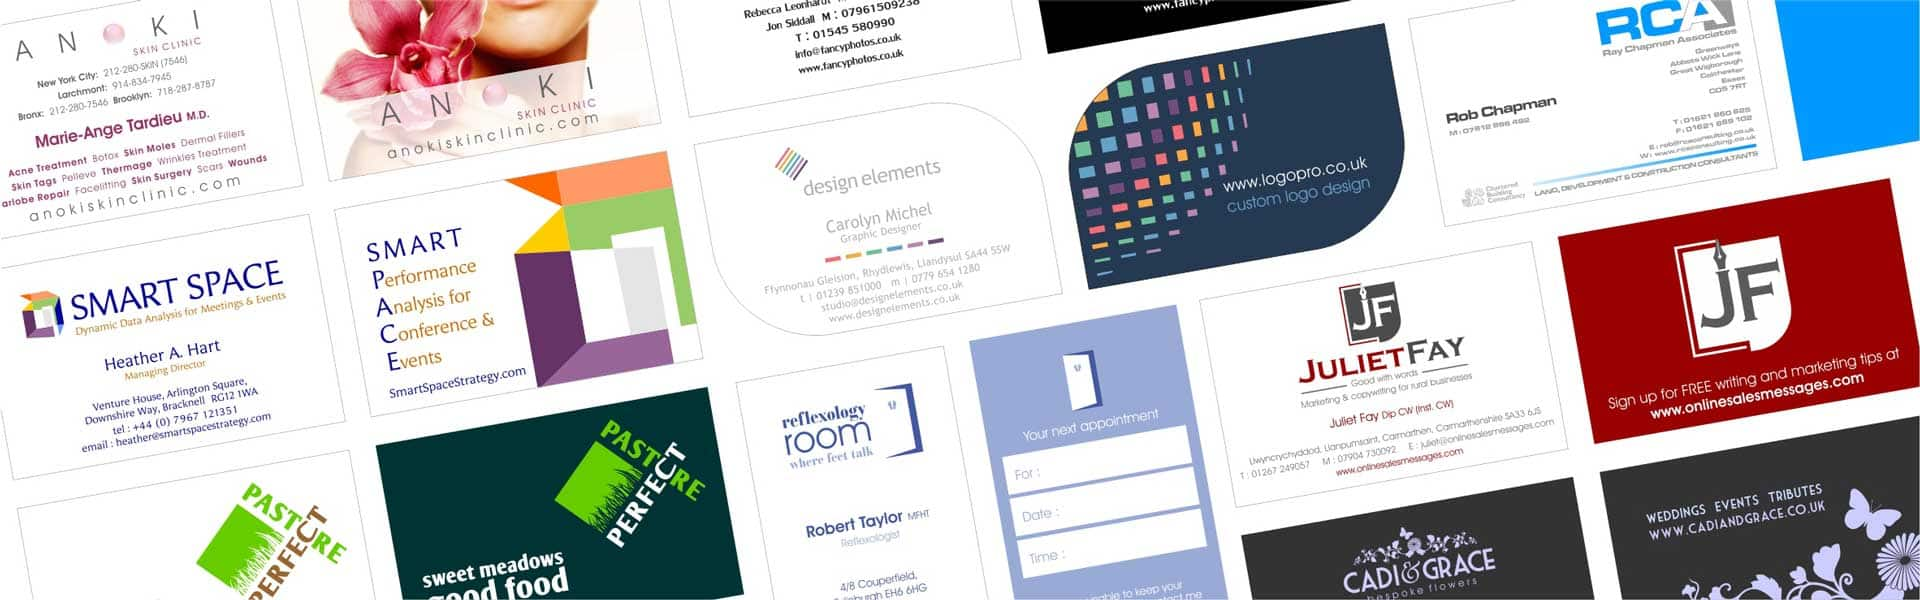 Examples of double sided business cards designed by Logopro